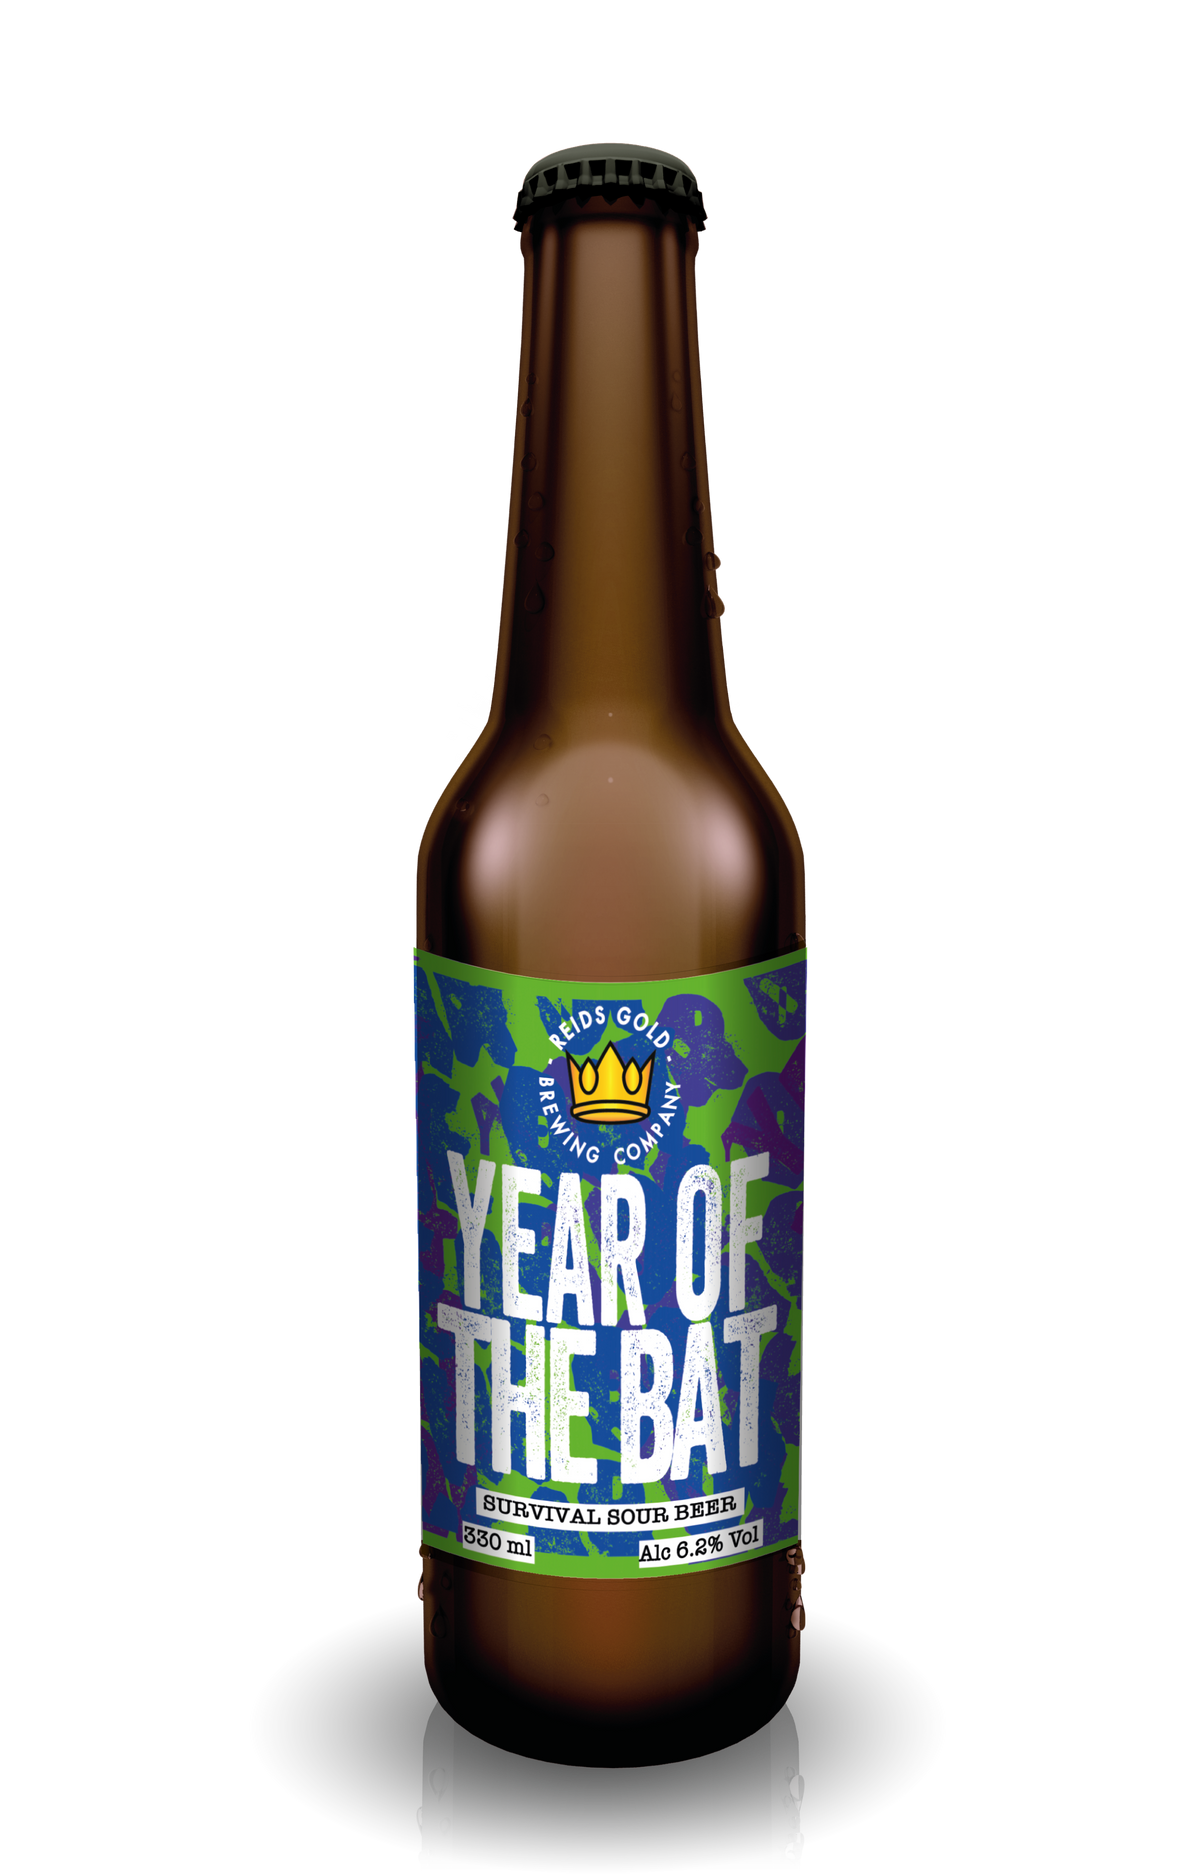 Year Of The Bat